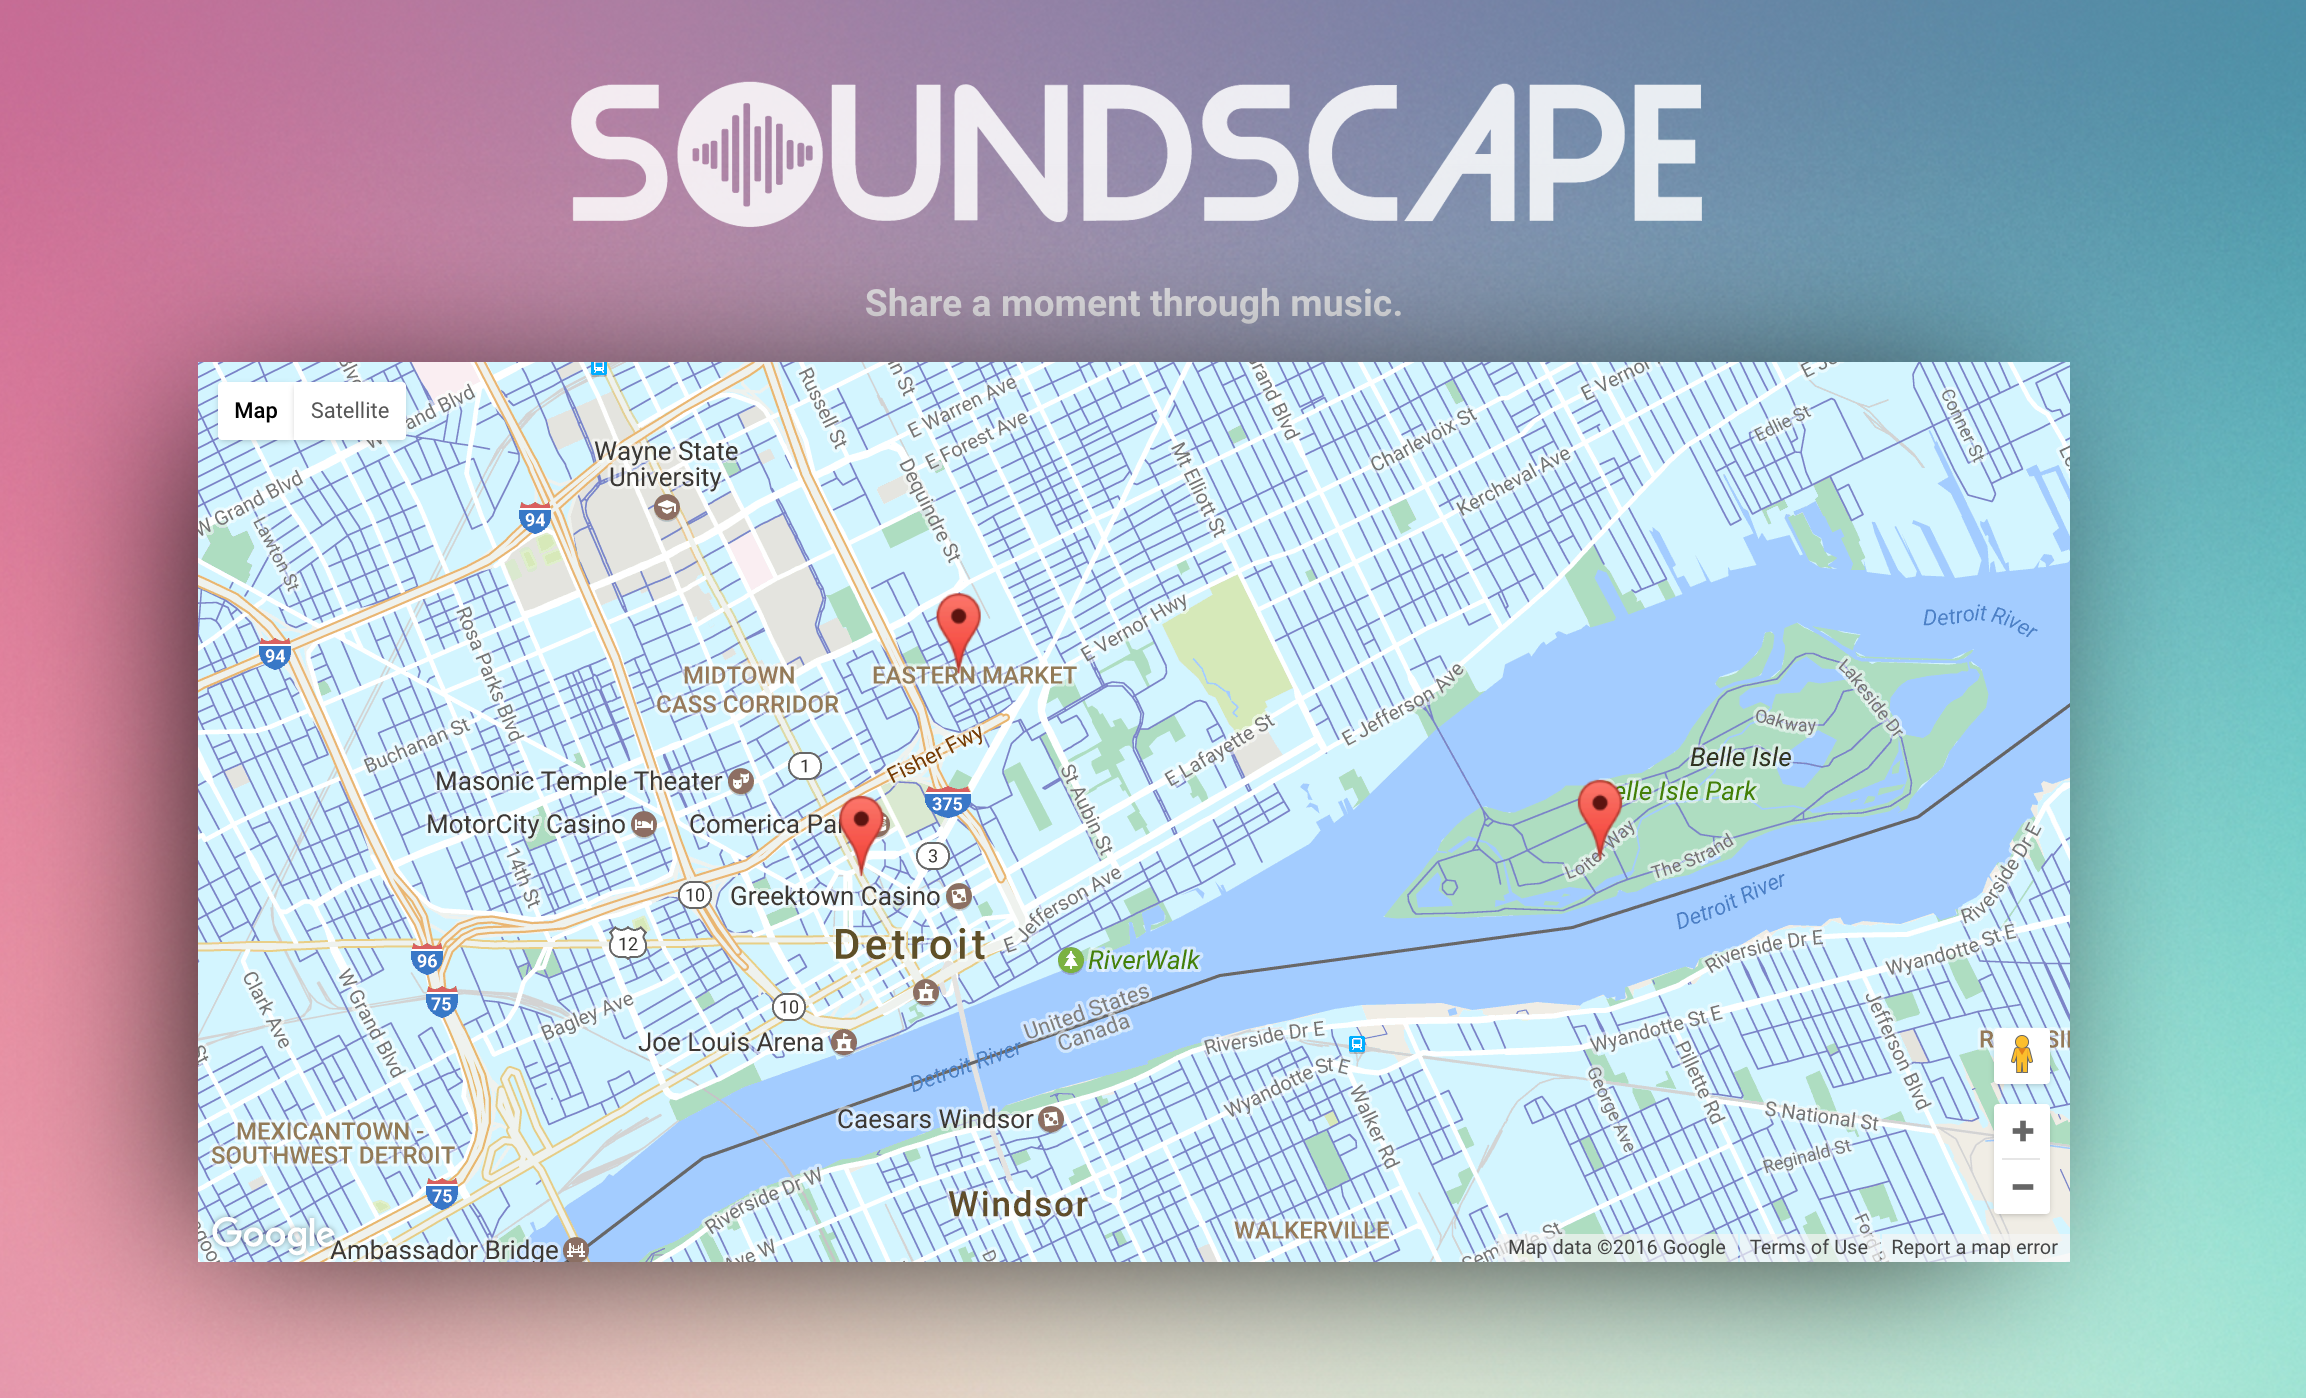 Home page of Soundscape application